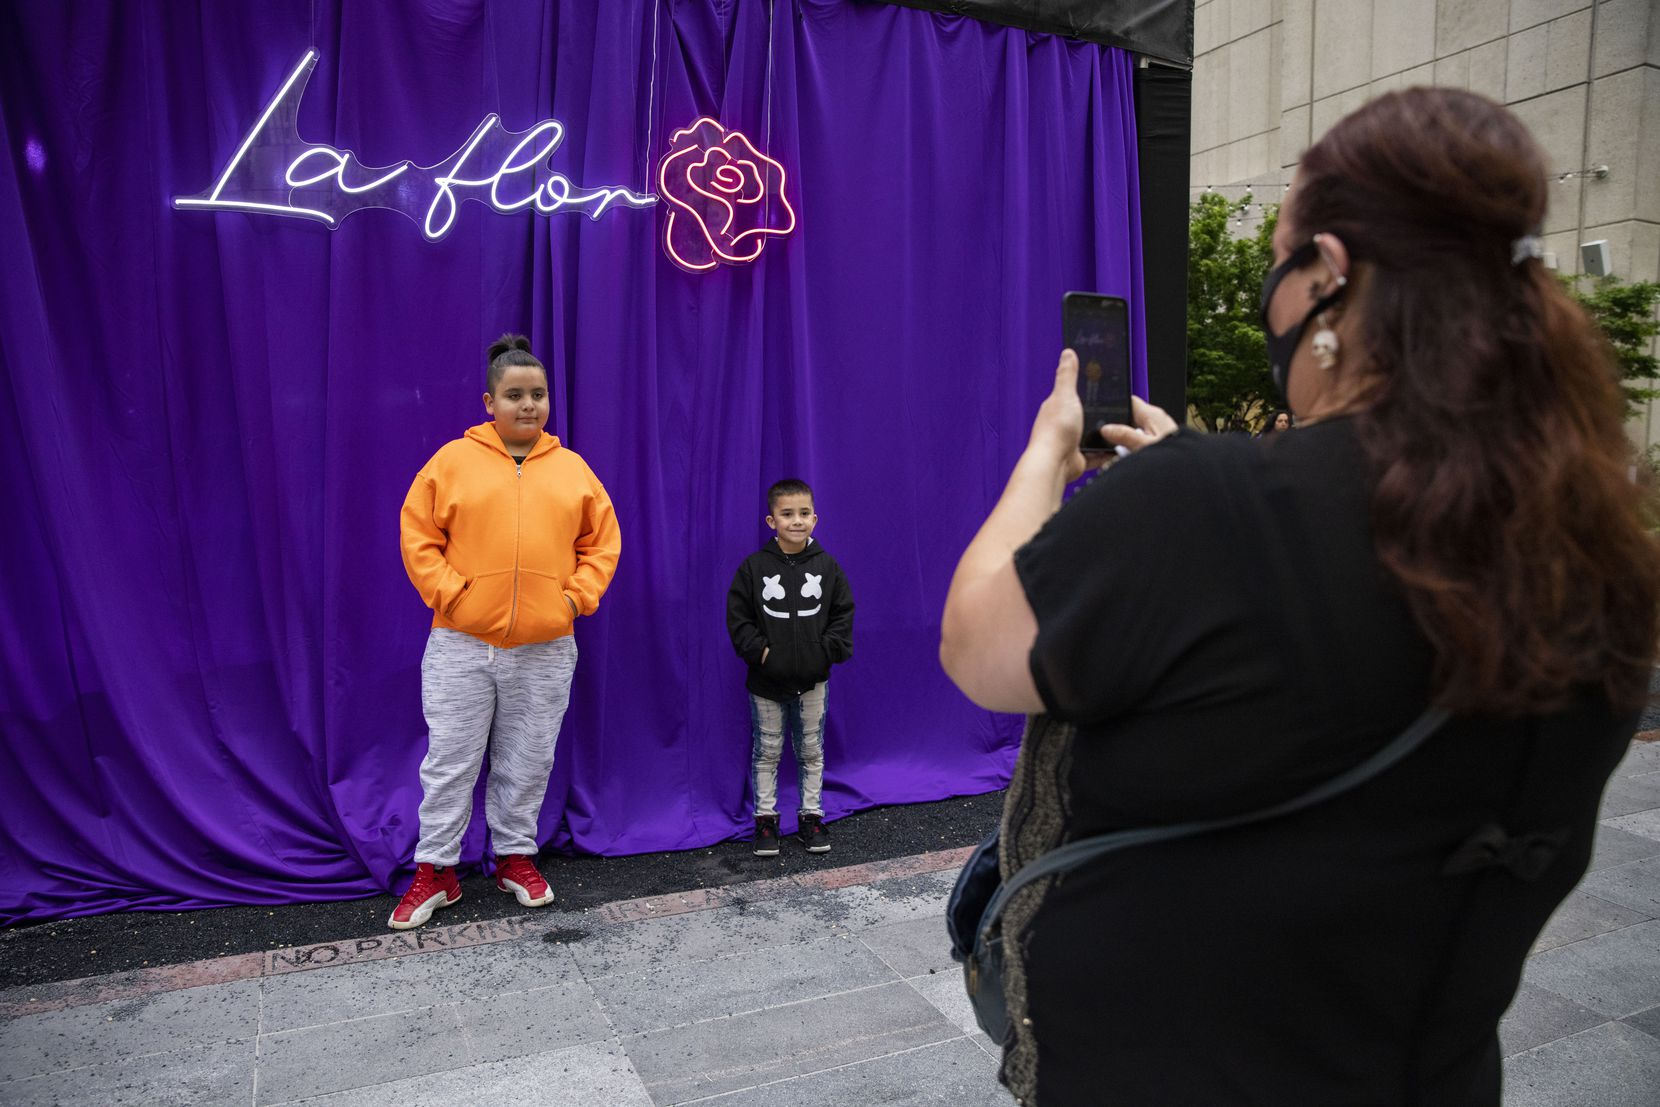 """Antonio (left), 11, poses with brother Lionel, 6, as mom Berdha Reyna takes a photo of them during the Selena 50th birthday celebration at Jaxon Beer Garden on Friday, April 16, 2021. Reyna said that her kids always sing Selena's songs when they pass the mural on West Jefferson Blvd. """"Su musica es una herencia, Reyna said. Meaning, Selena's music is like an inheritance."""